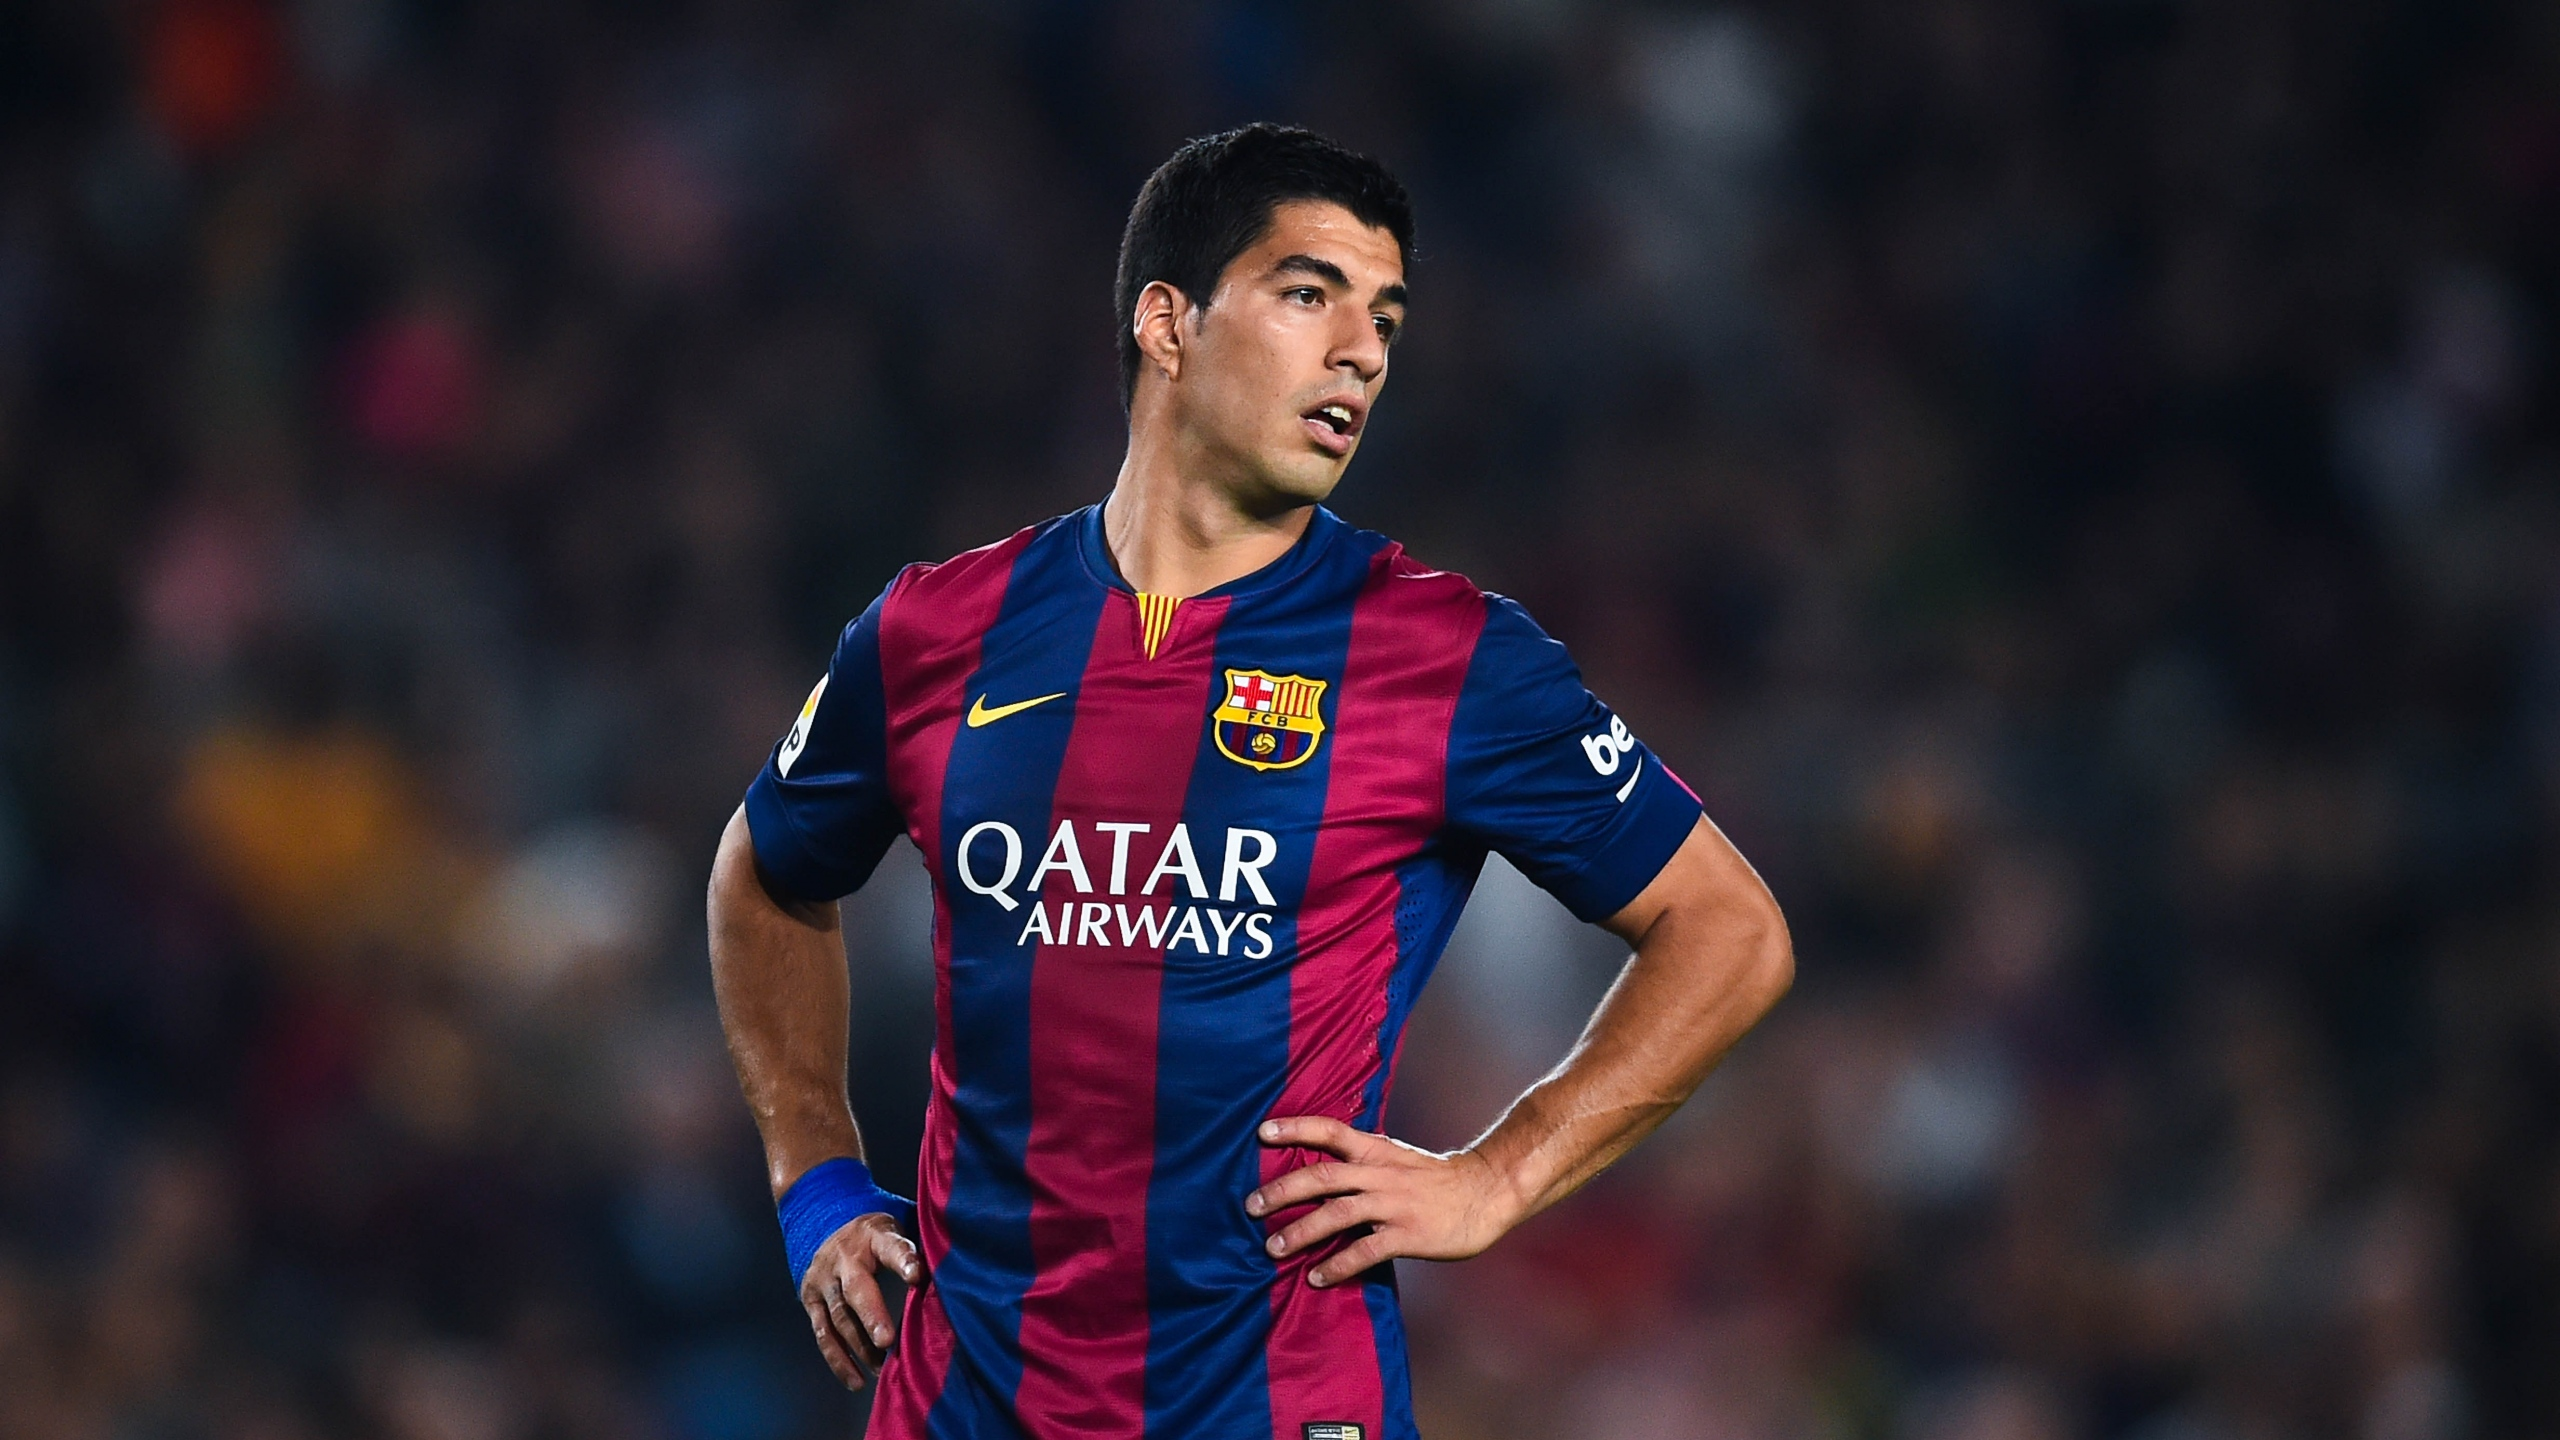 luis suarez football soccer player hd free background mobile download desktop photos